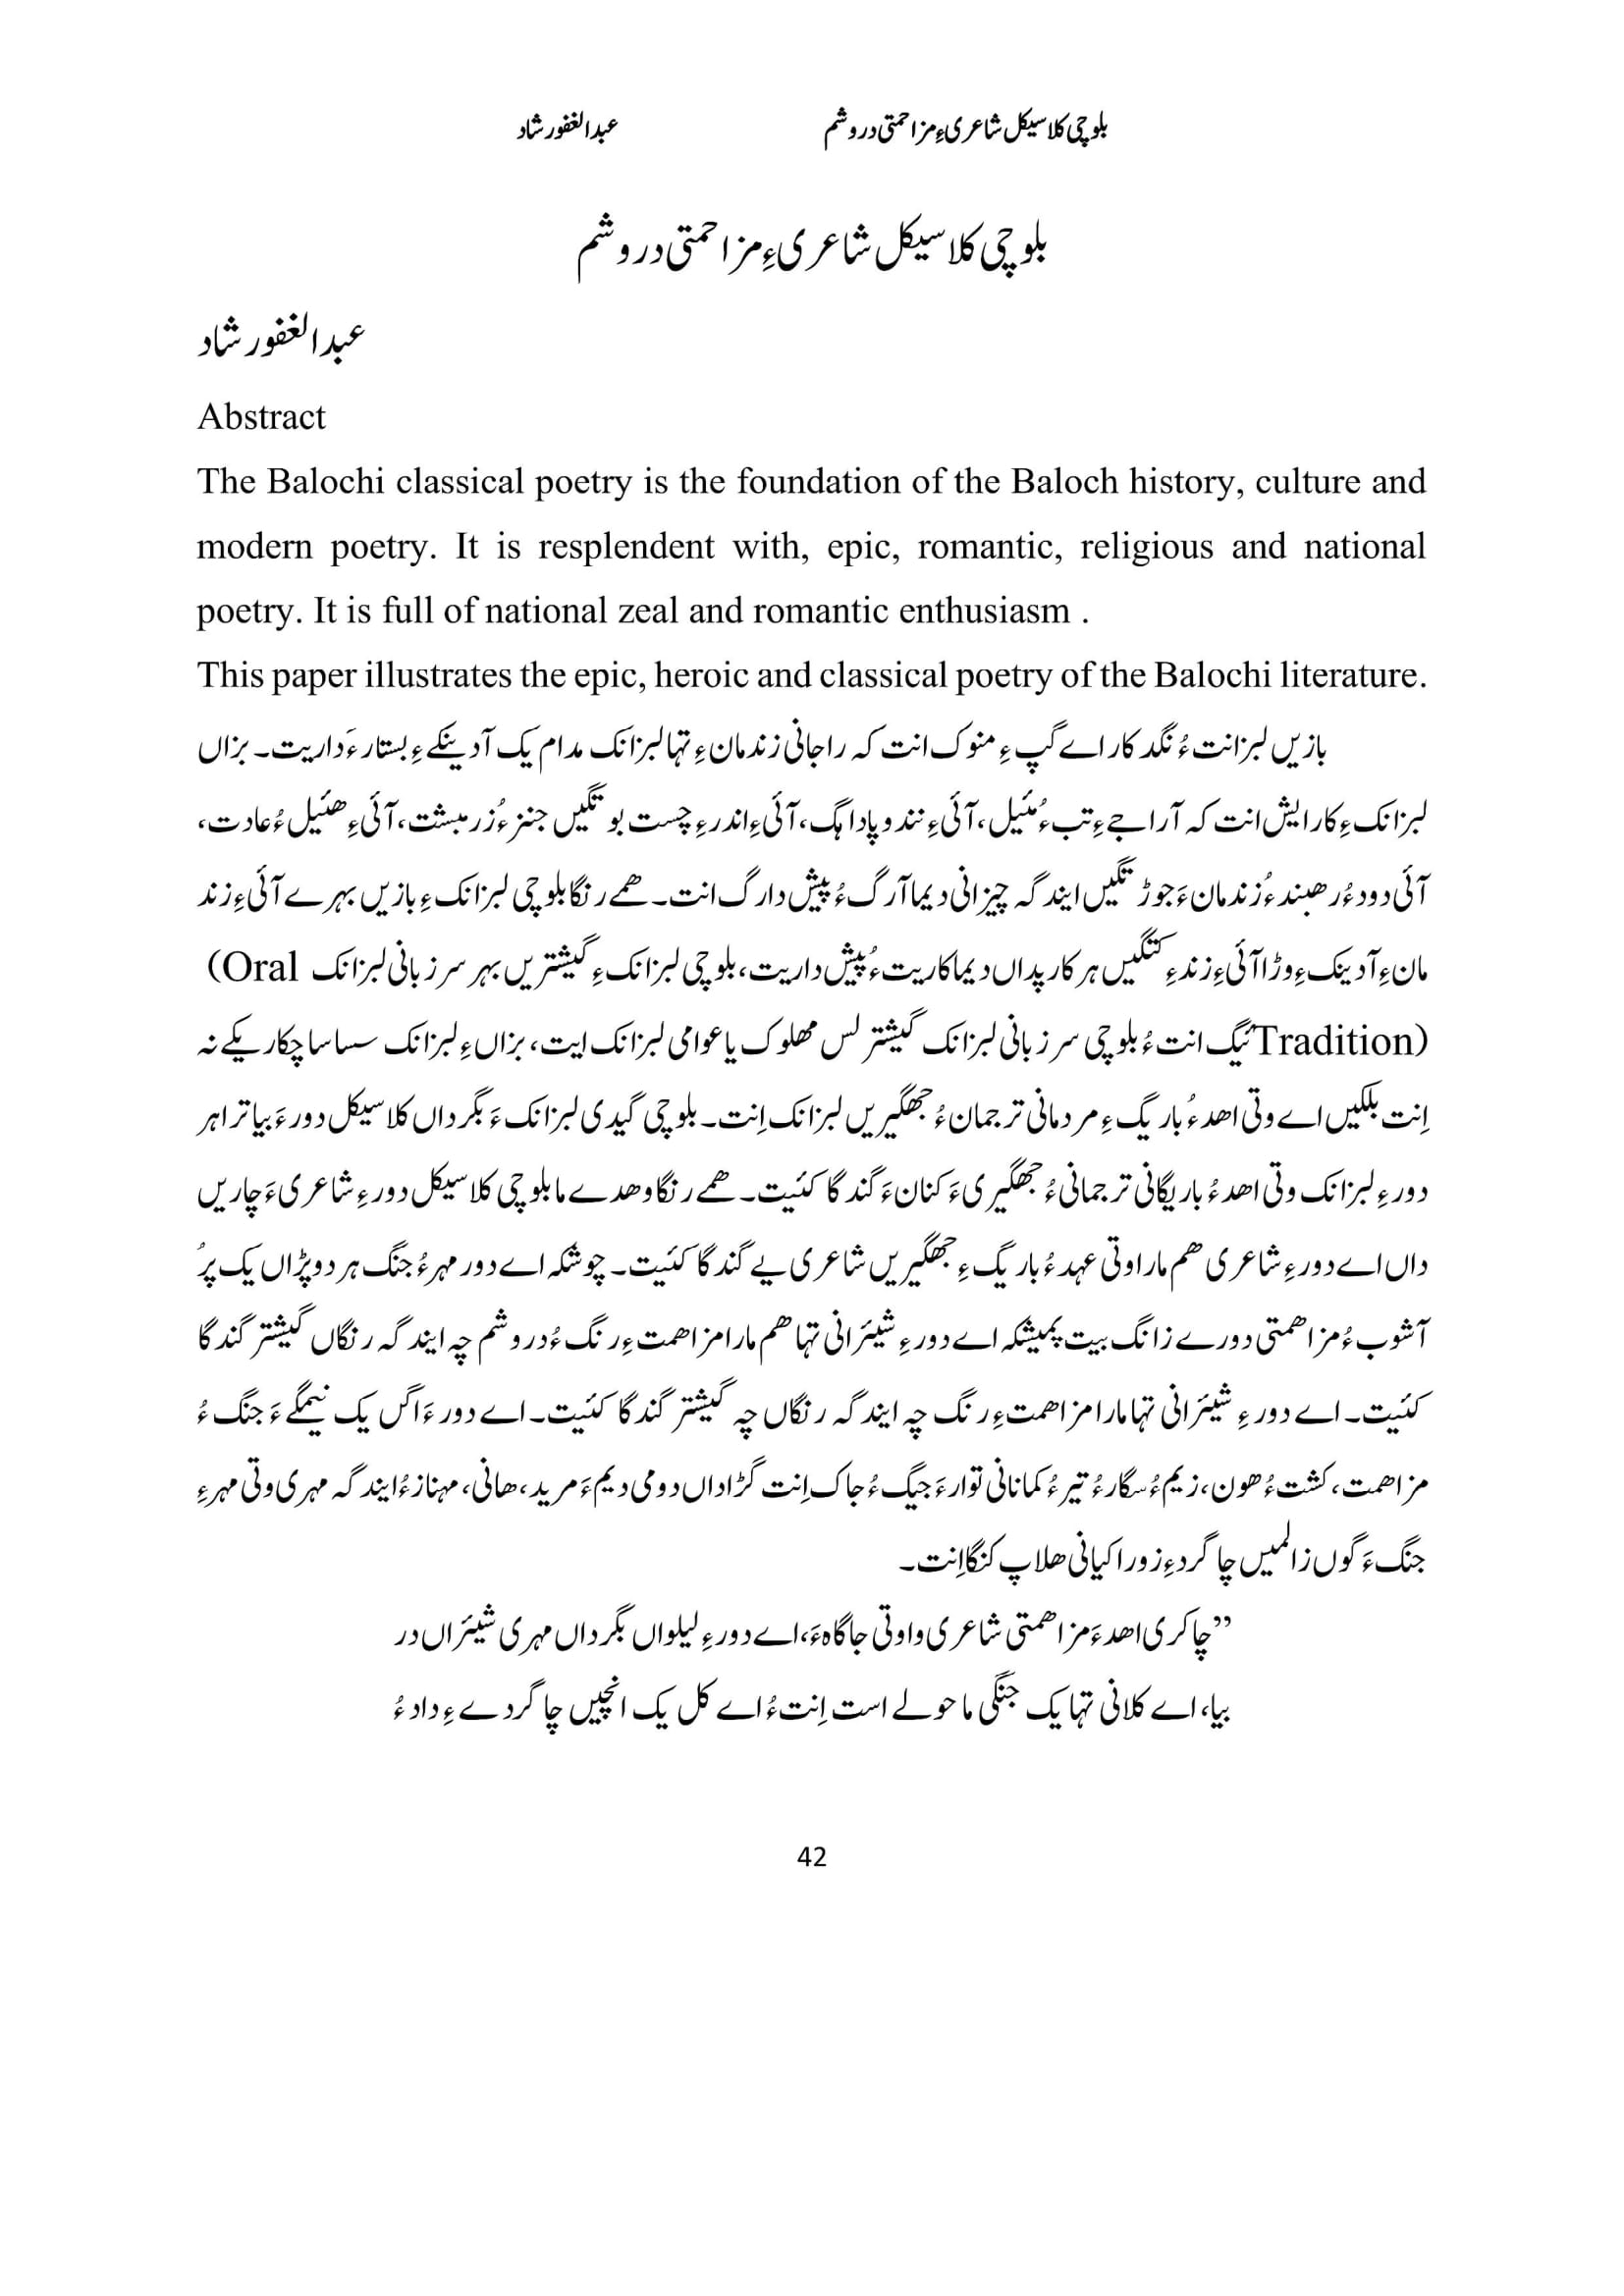 Rebellious Elements in Balochi Classical Poetry